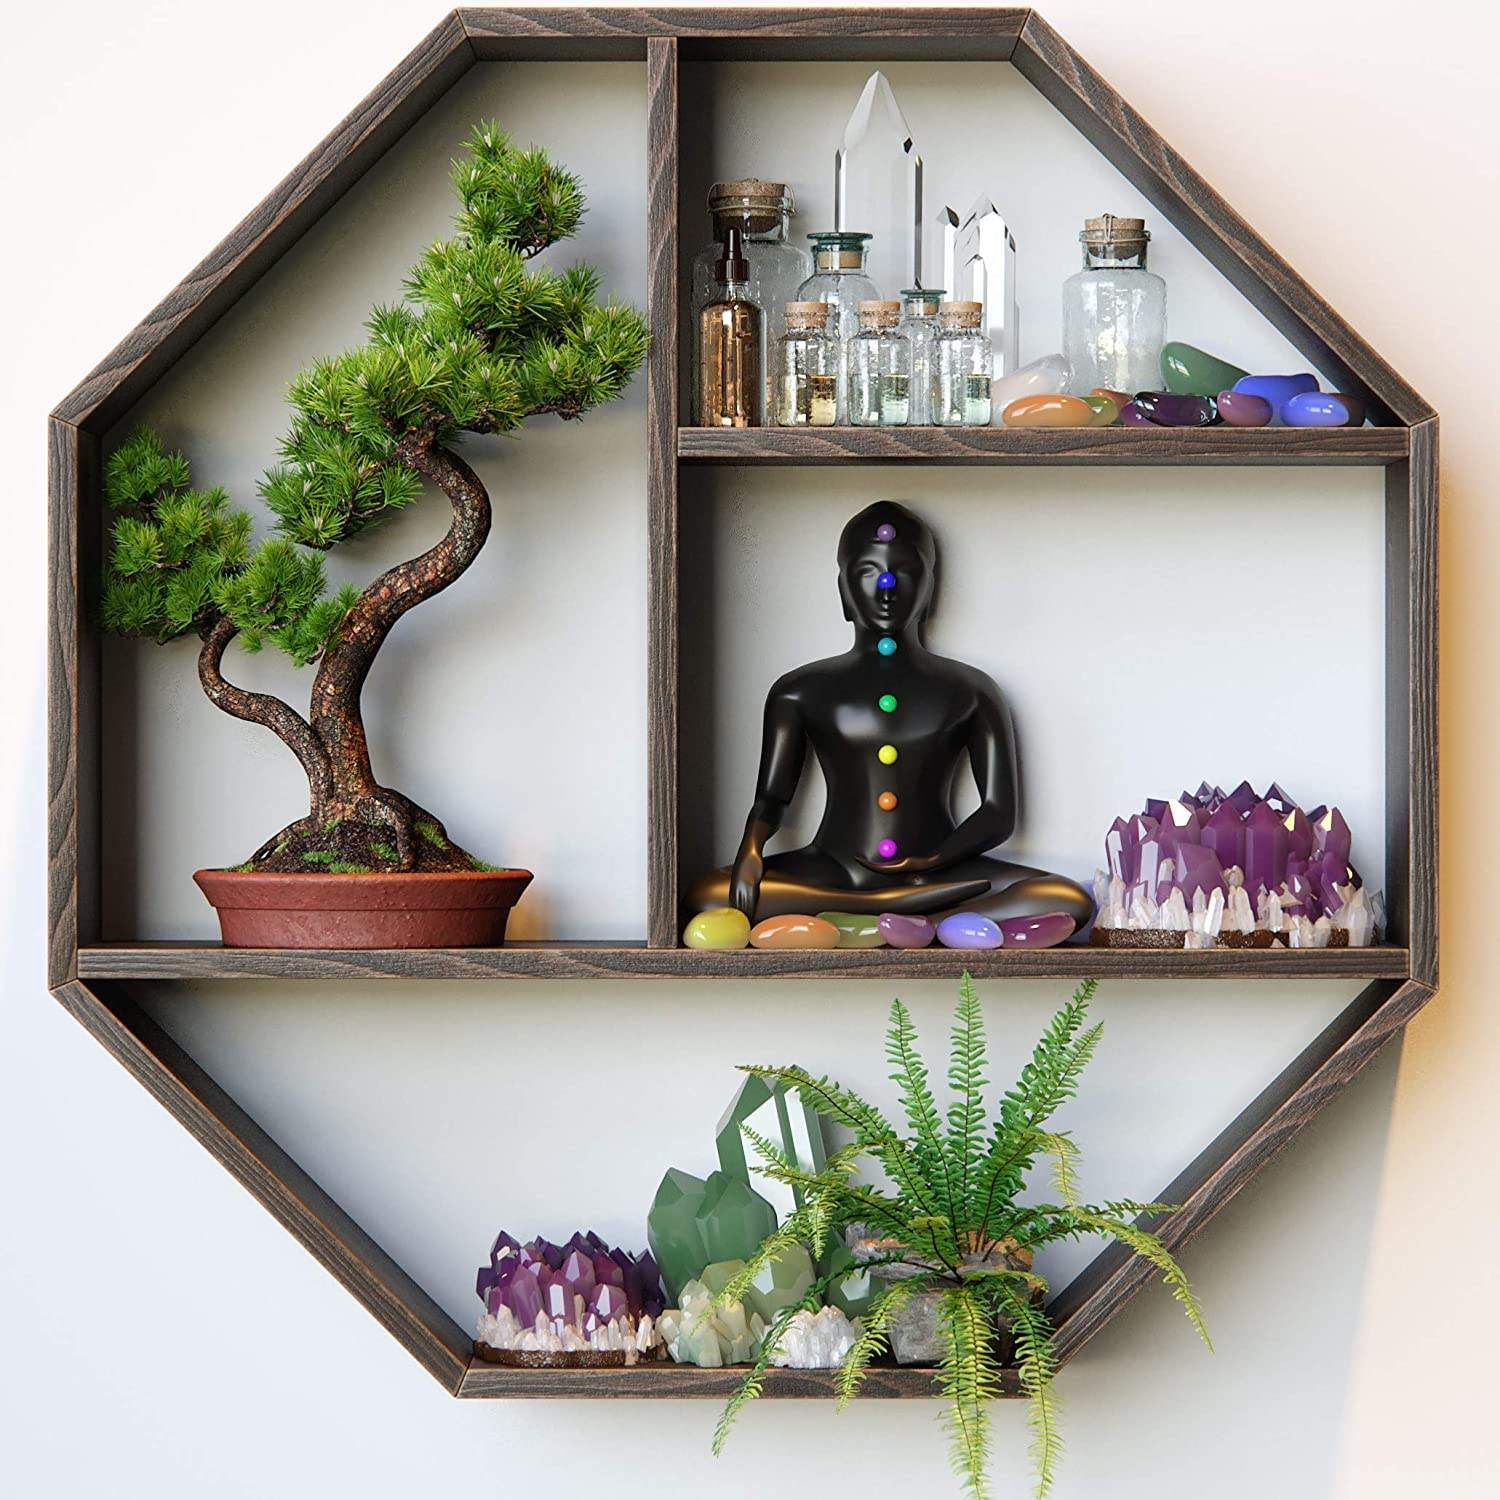 Geometric Wall Shelf can Be Used as Crystal Holder, Crystal Display Shelf or Essential Oil Shelf Organizer